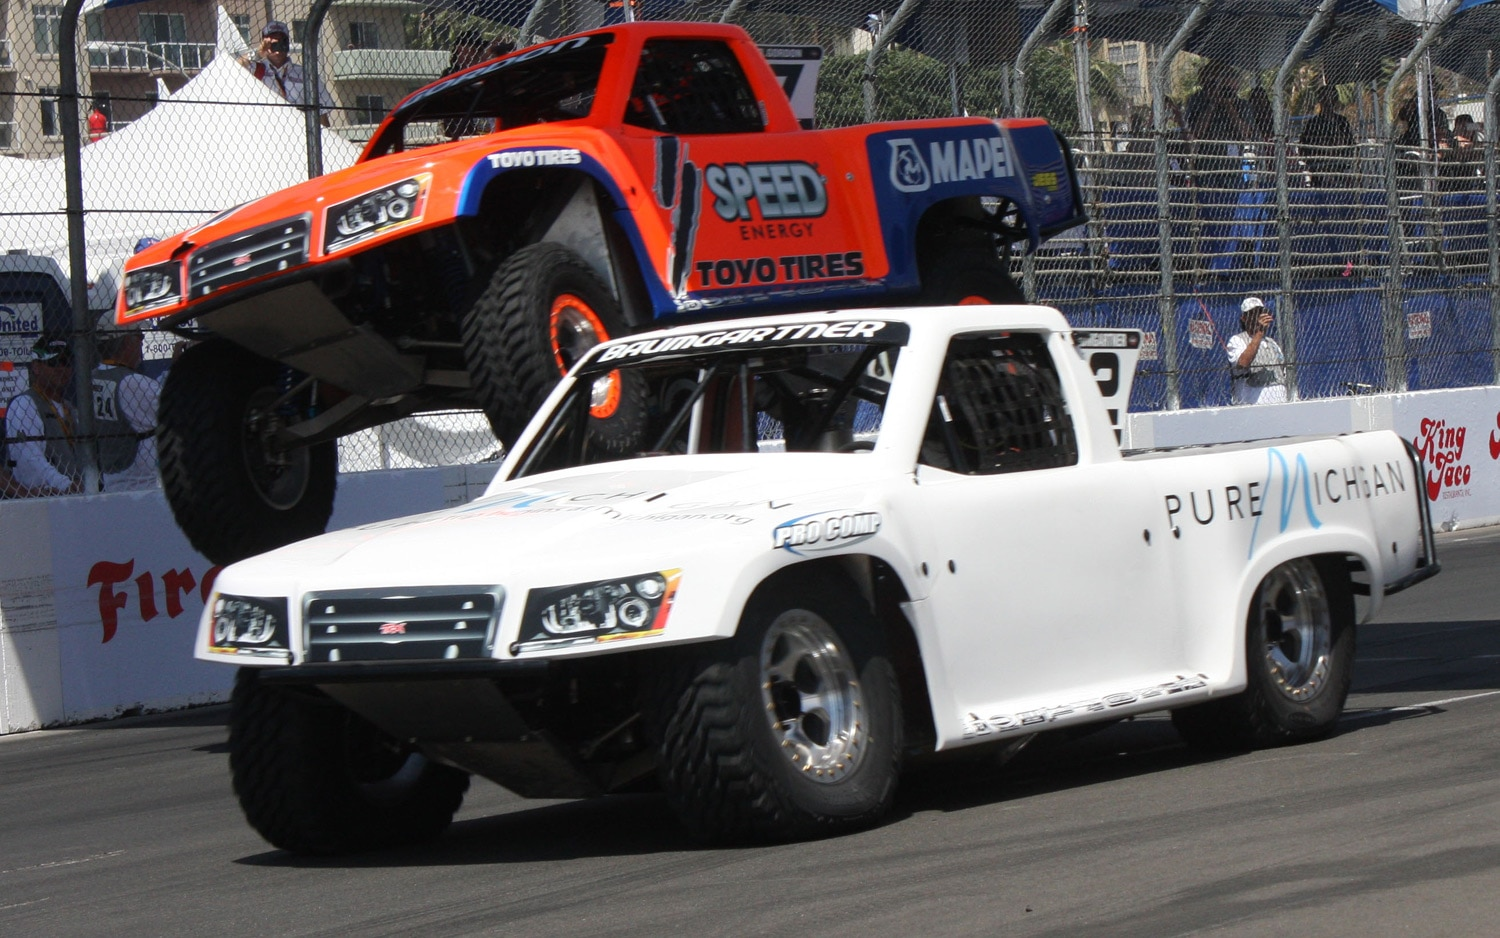 1304OR 01+Robby Gordon SST Stadium Super Trucks 2013 Long Beach Grand Prix Nick Baumgartner